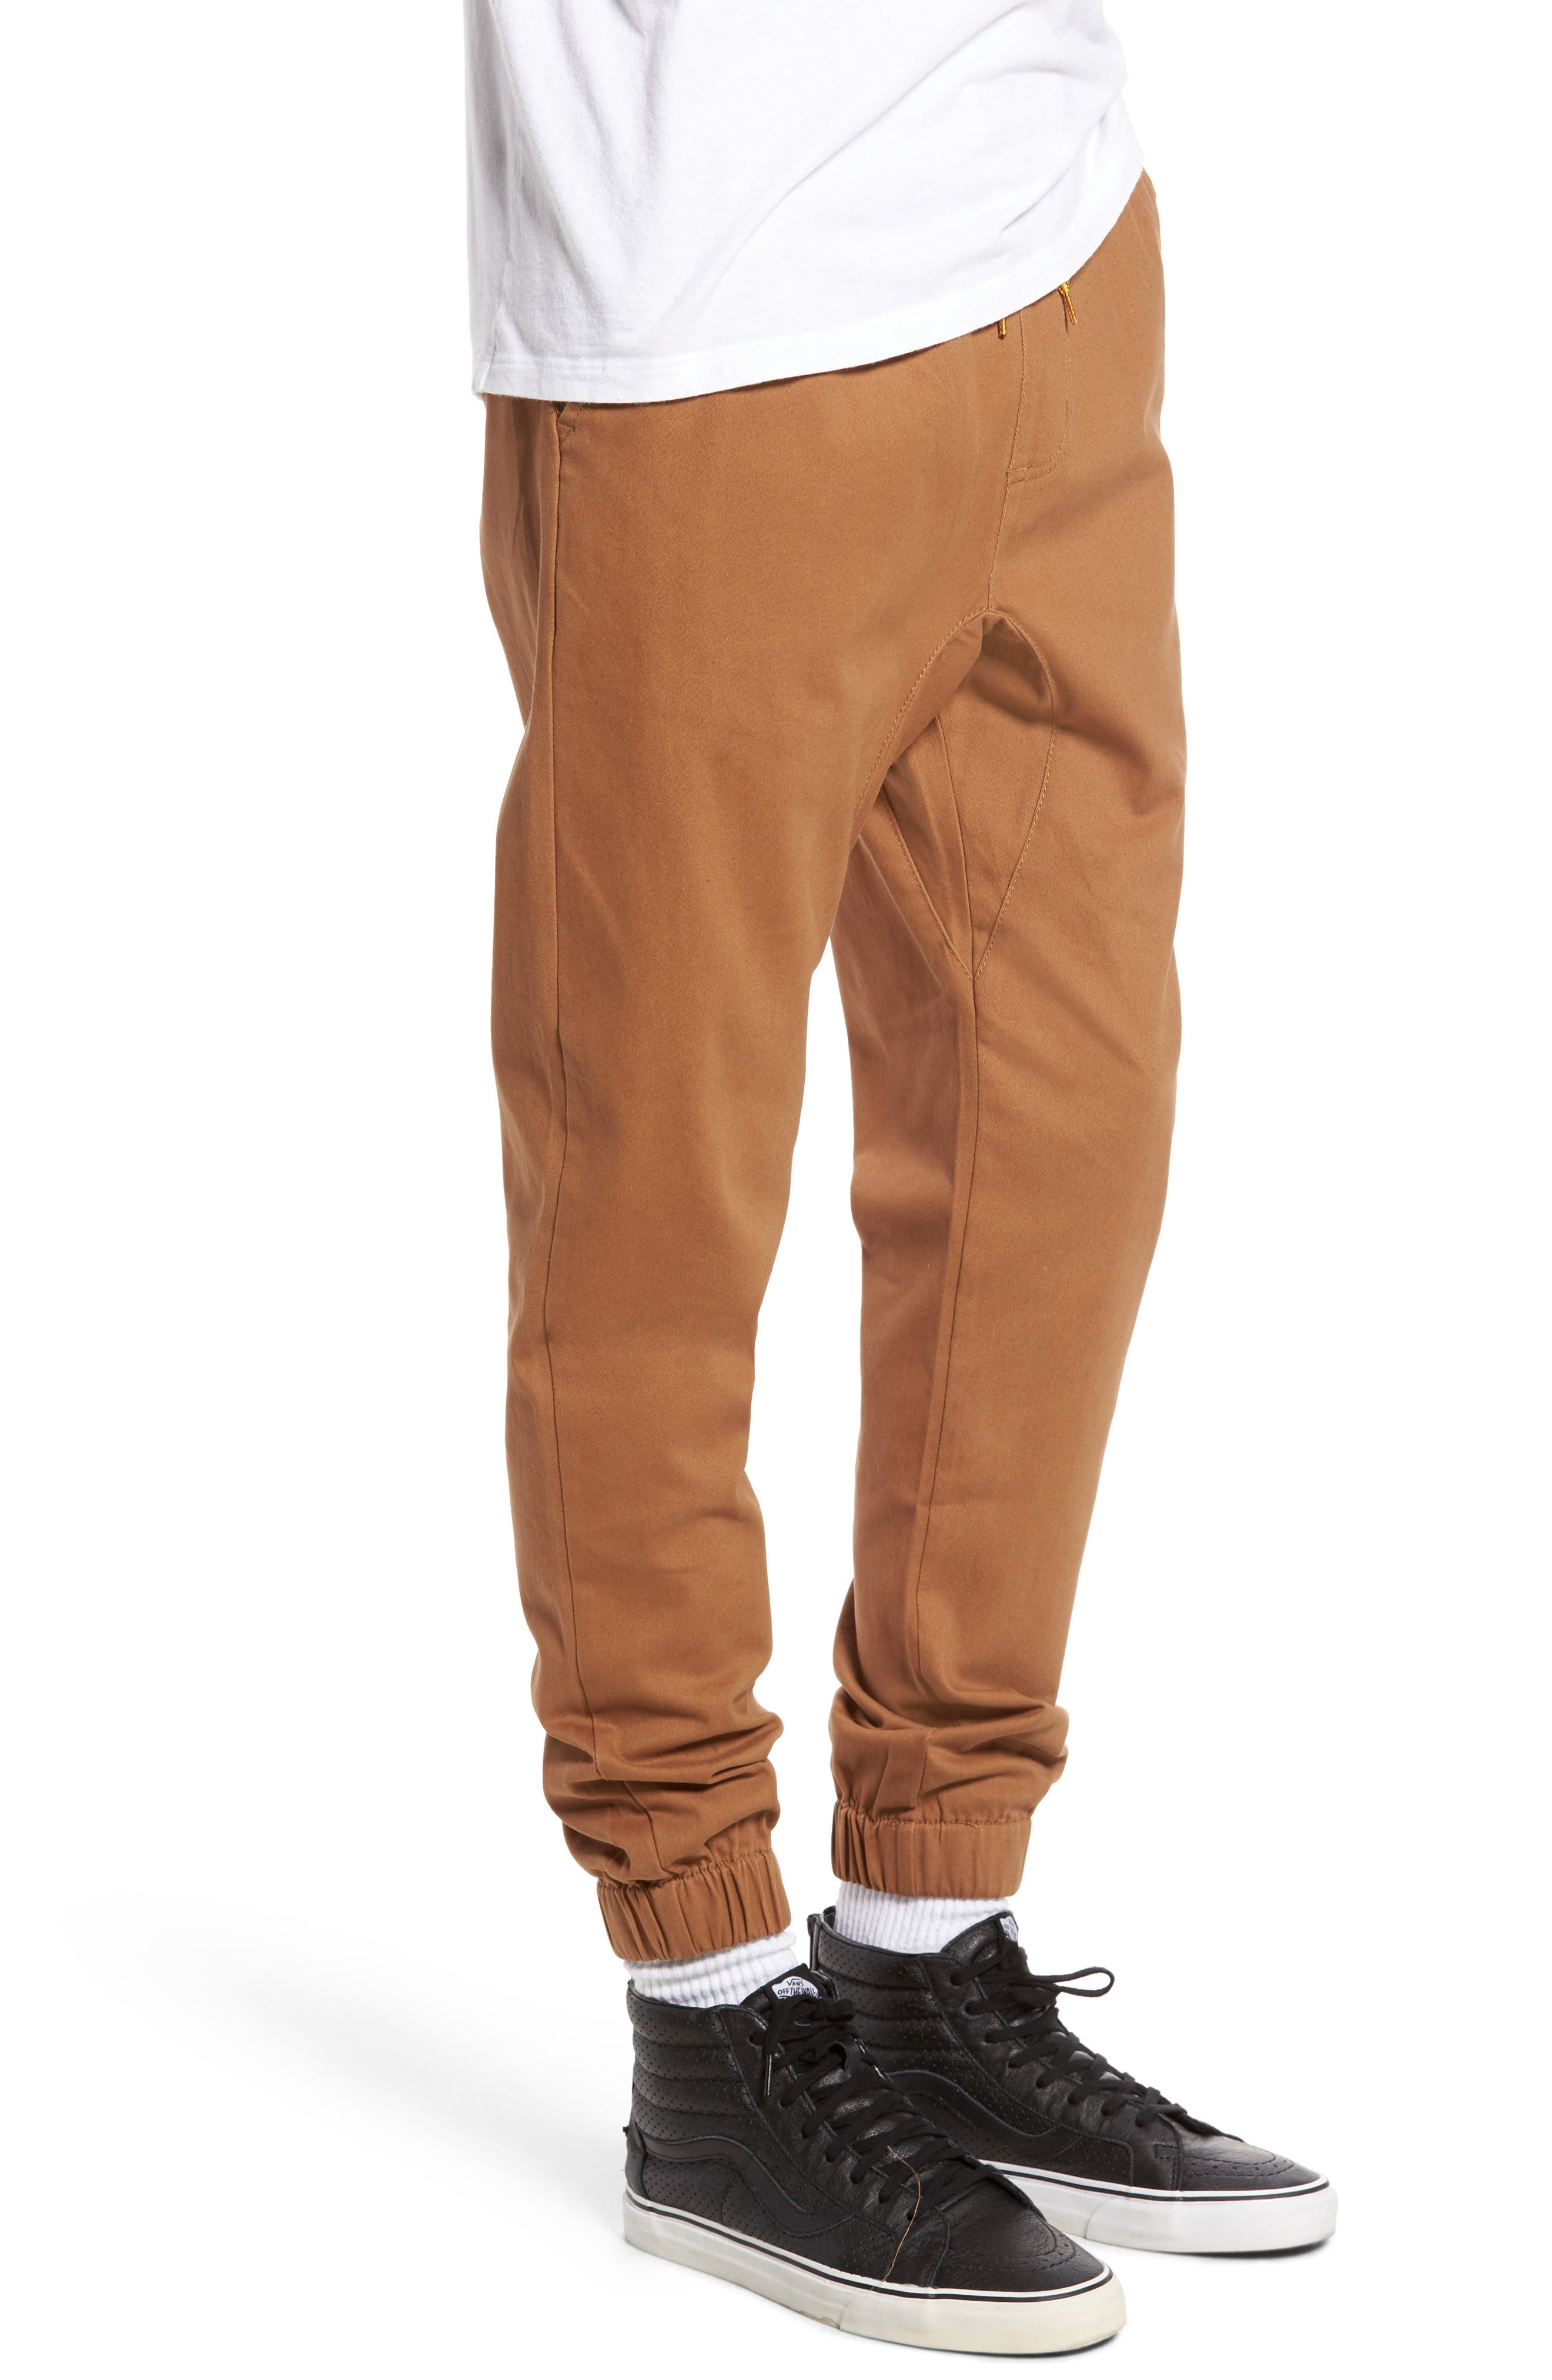 Weekend Jogger Pants,                             Alternate thumbnail 19, color,